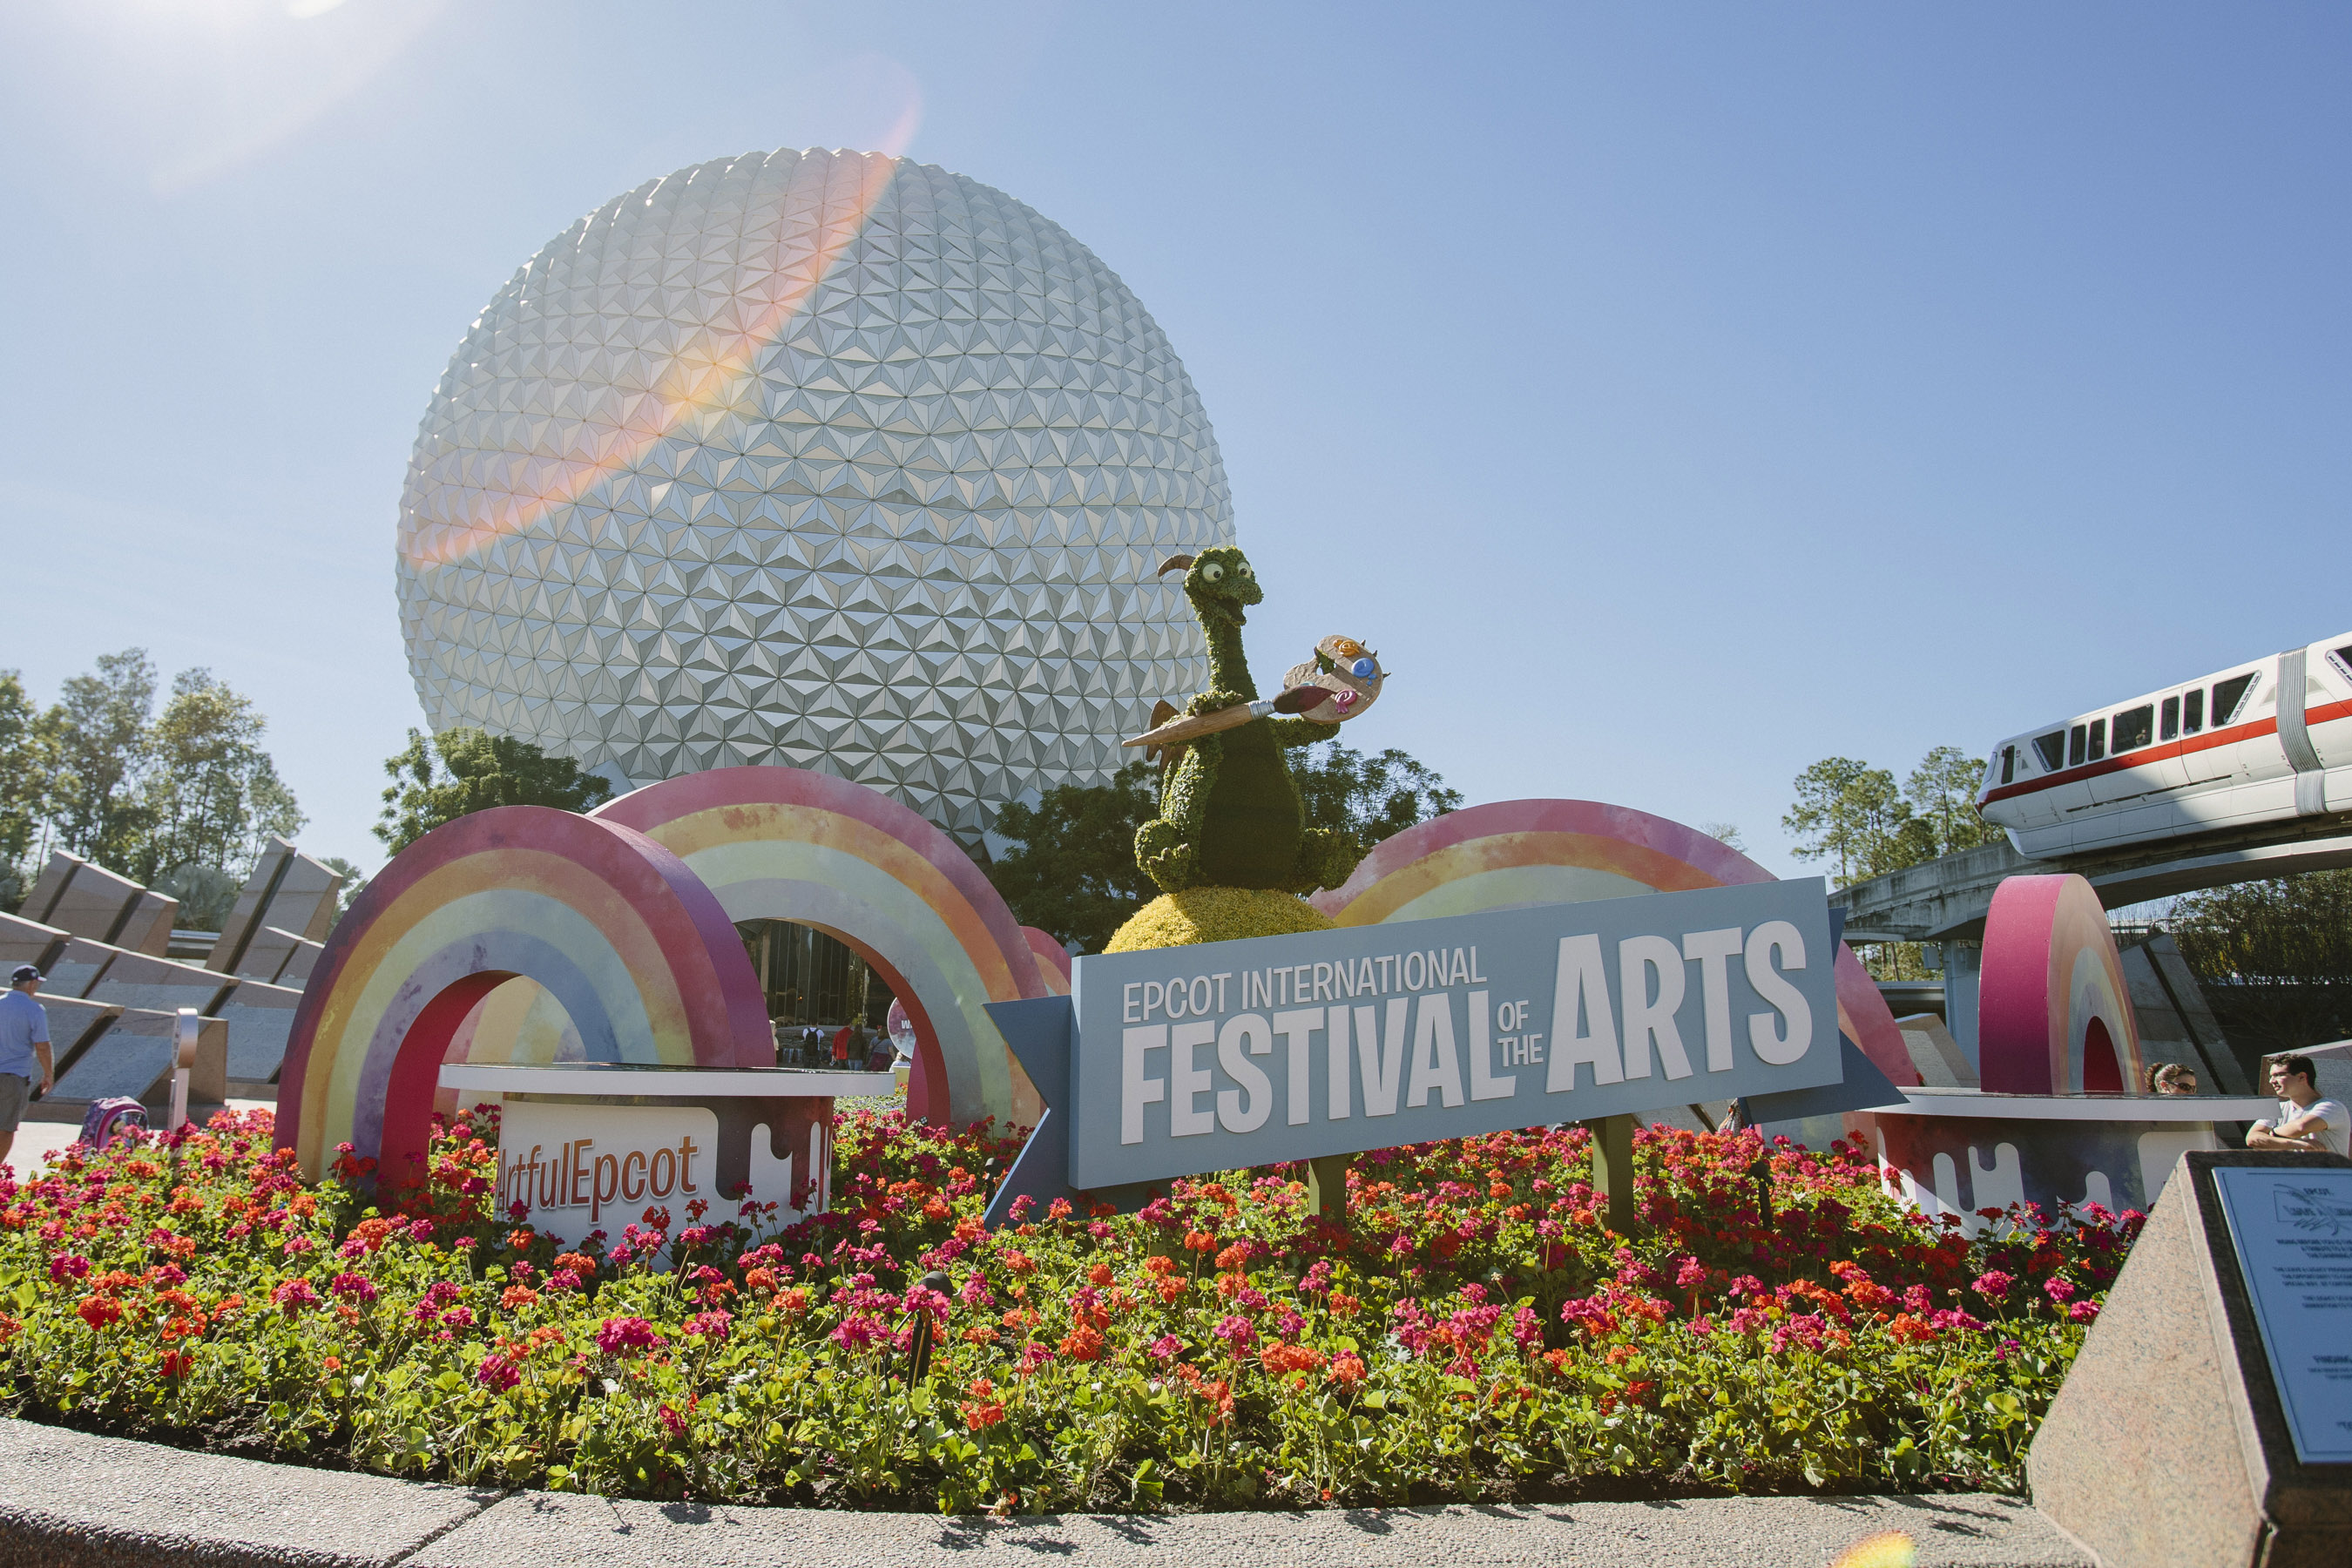 Four Signature Epcot Festivals Welcome Guests to Walt Disney World Resort in 2019